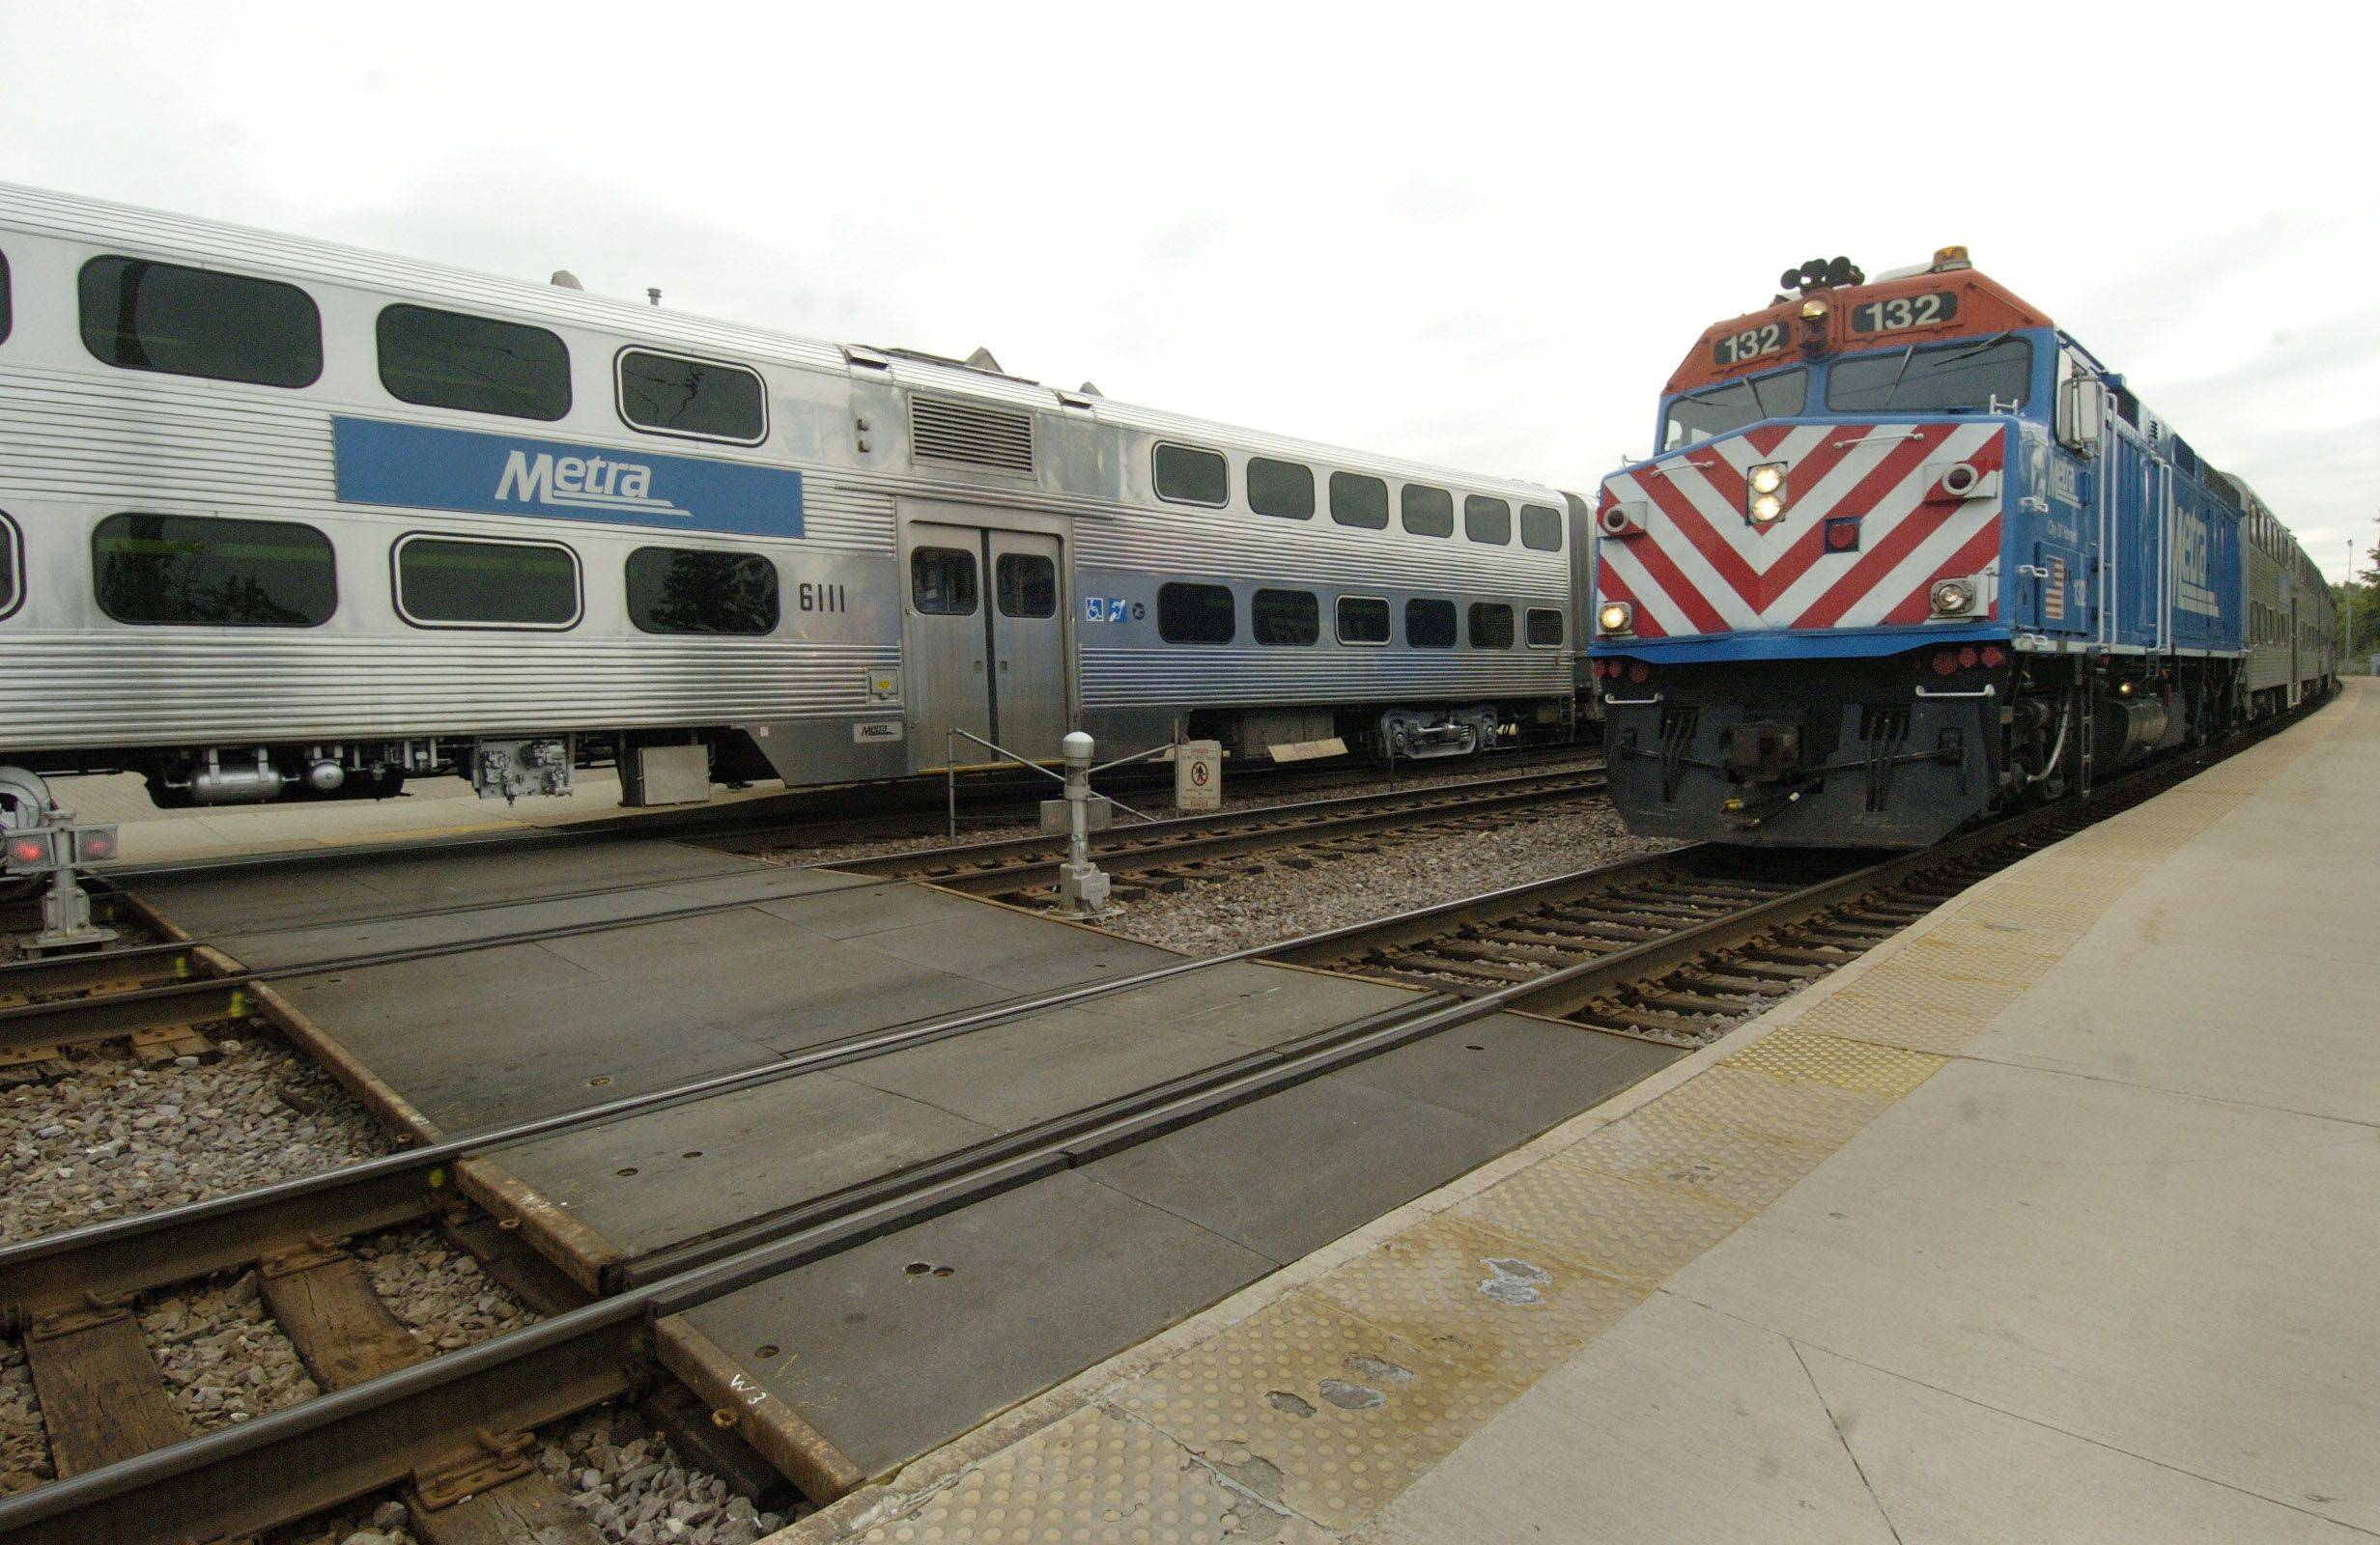 Regional Transportation Authority officials contend an amendment to the State Finance Act could cost Pace, Metra and the CTA millions in much-needed revenue while legitimizing tax shelters.